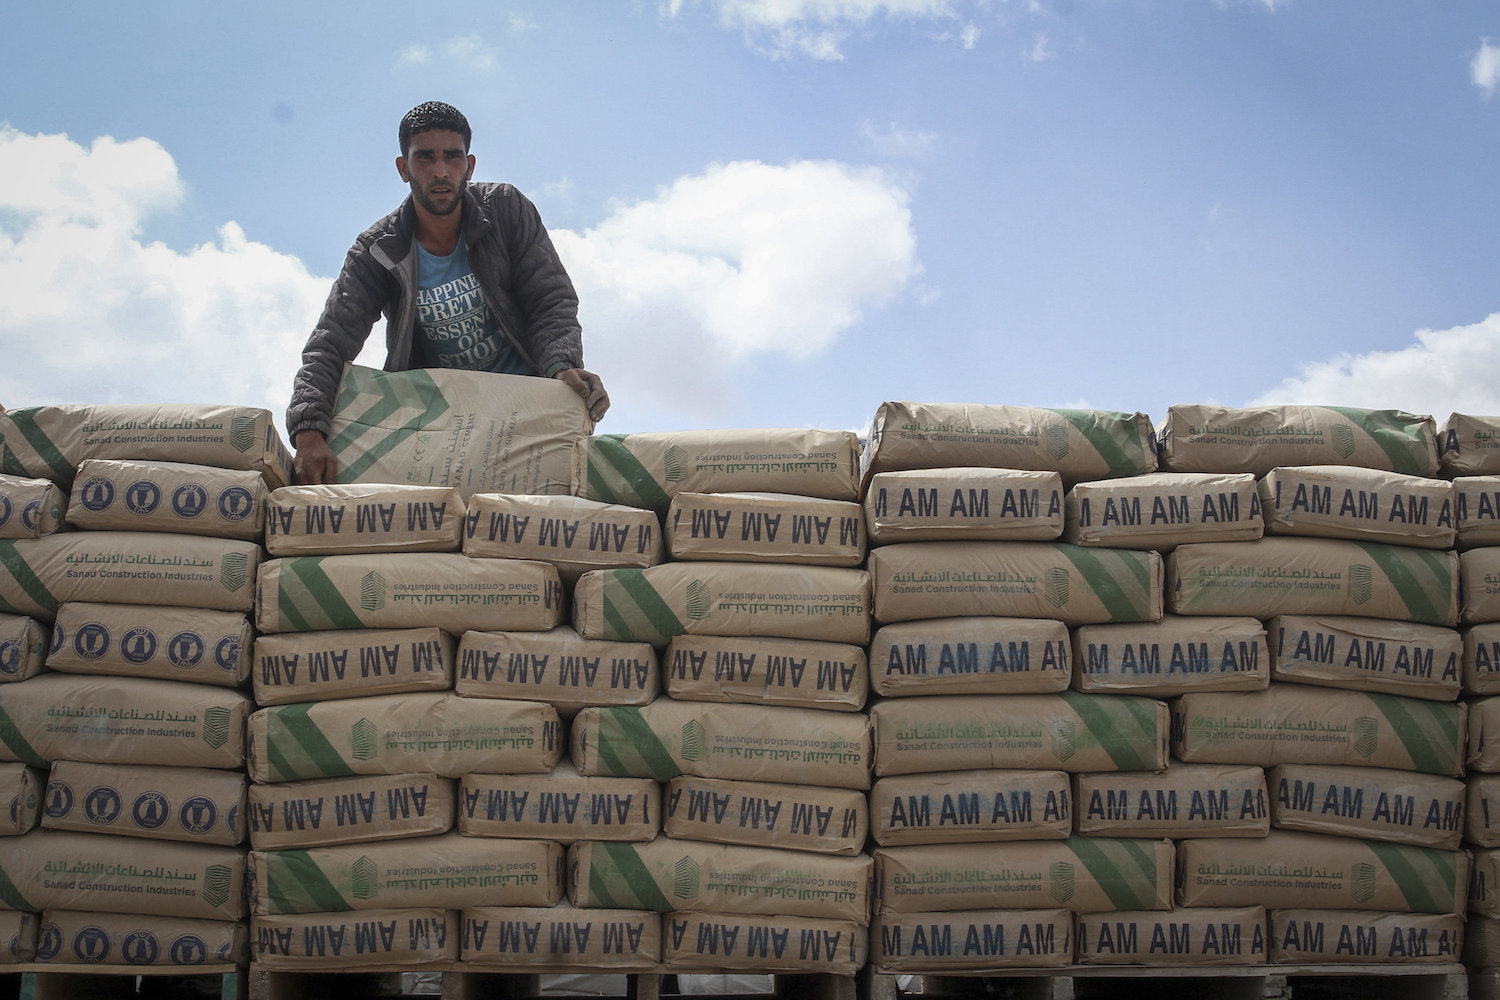 A Palestinian truck loaded with bags of cement after it entered the southern Gaza Strip from Israel through the Kerem Shalom crossing in Rafah, on May 23, 2016. (Abed Rahim Khatib/Flash90)